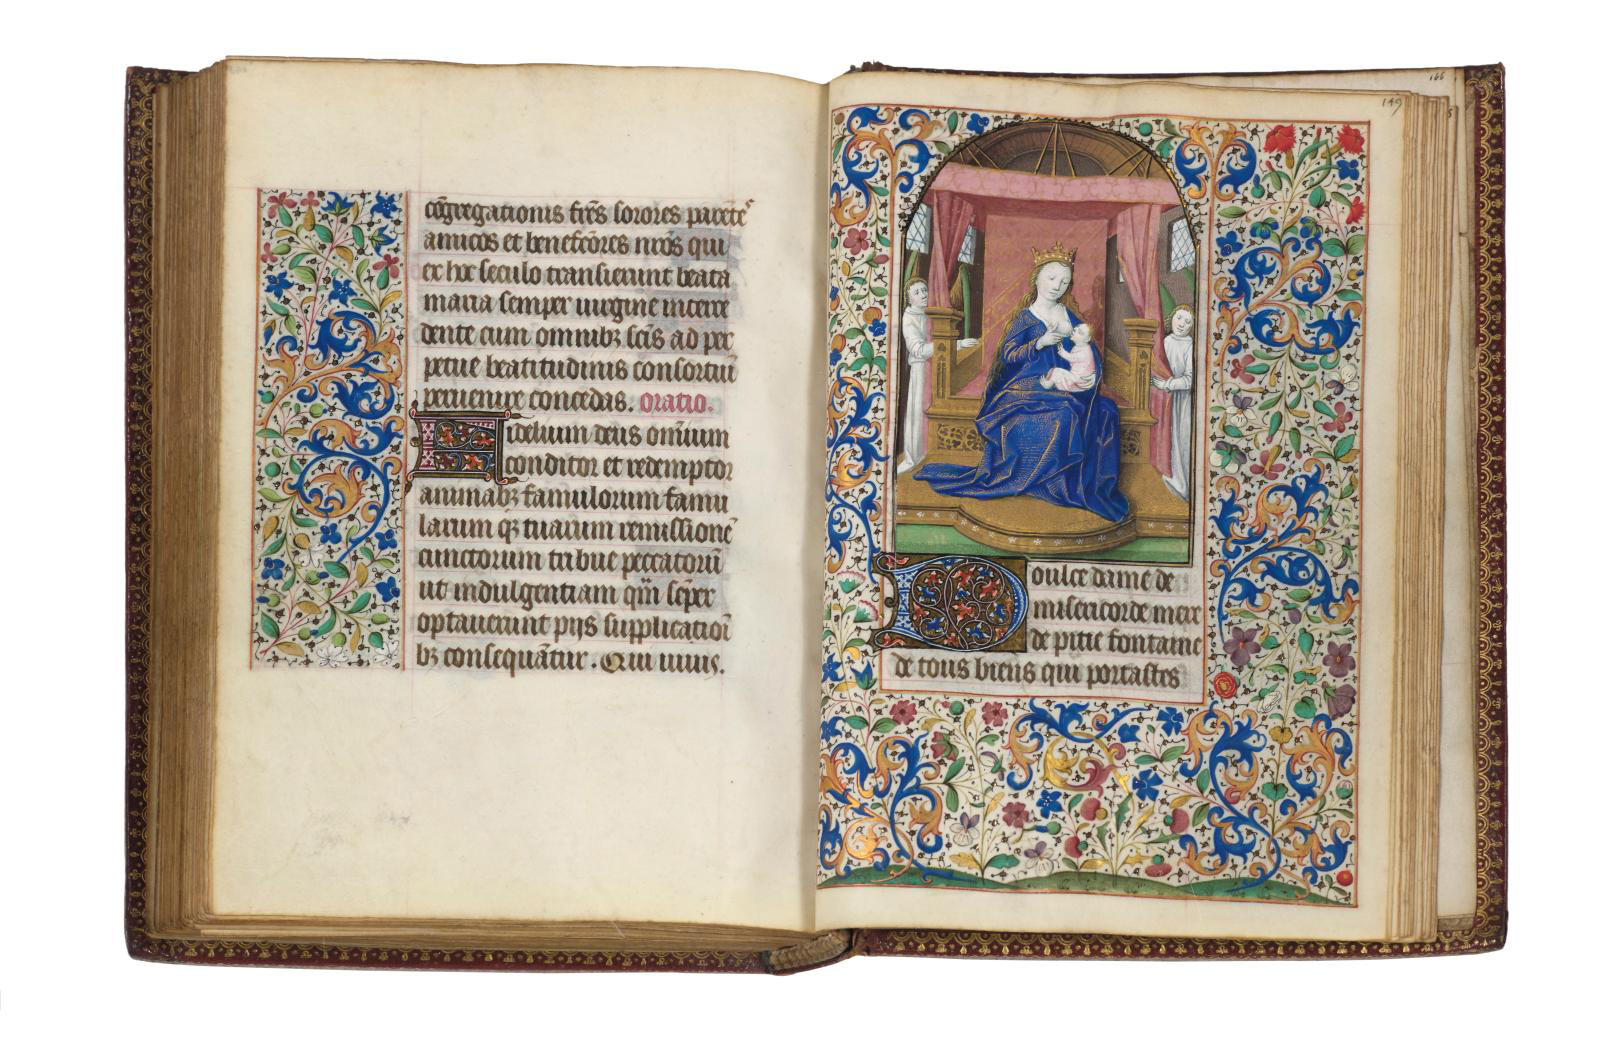 Book of Hours for Use in Paris in Latin and French, illuminated manuscript on parchment by the Coëtivy Master, 167 leaves, Paris, c. 1460, 13 x 19 cm /5.19 x 7.48 in. Estimate: €130,000/150,000